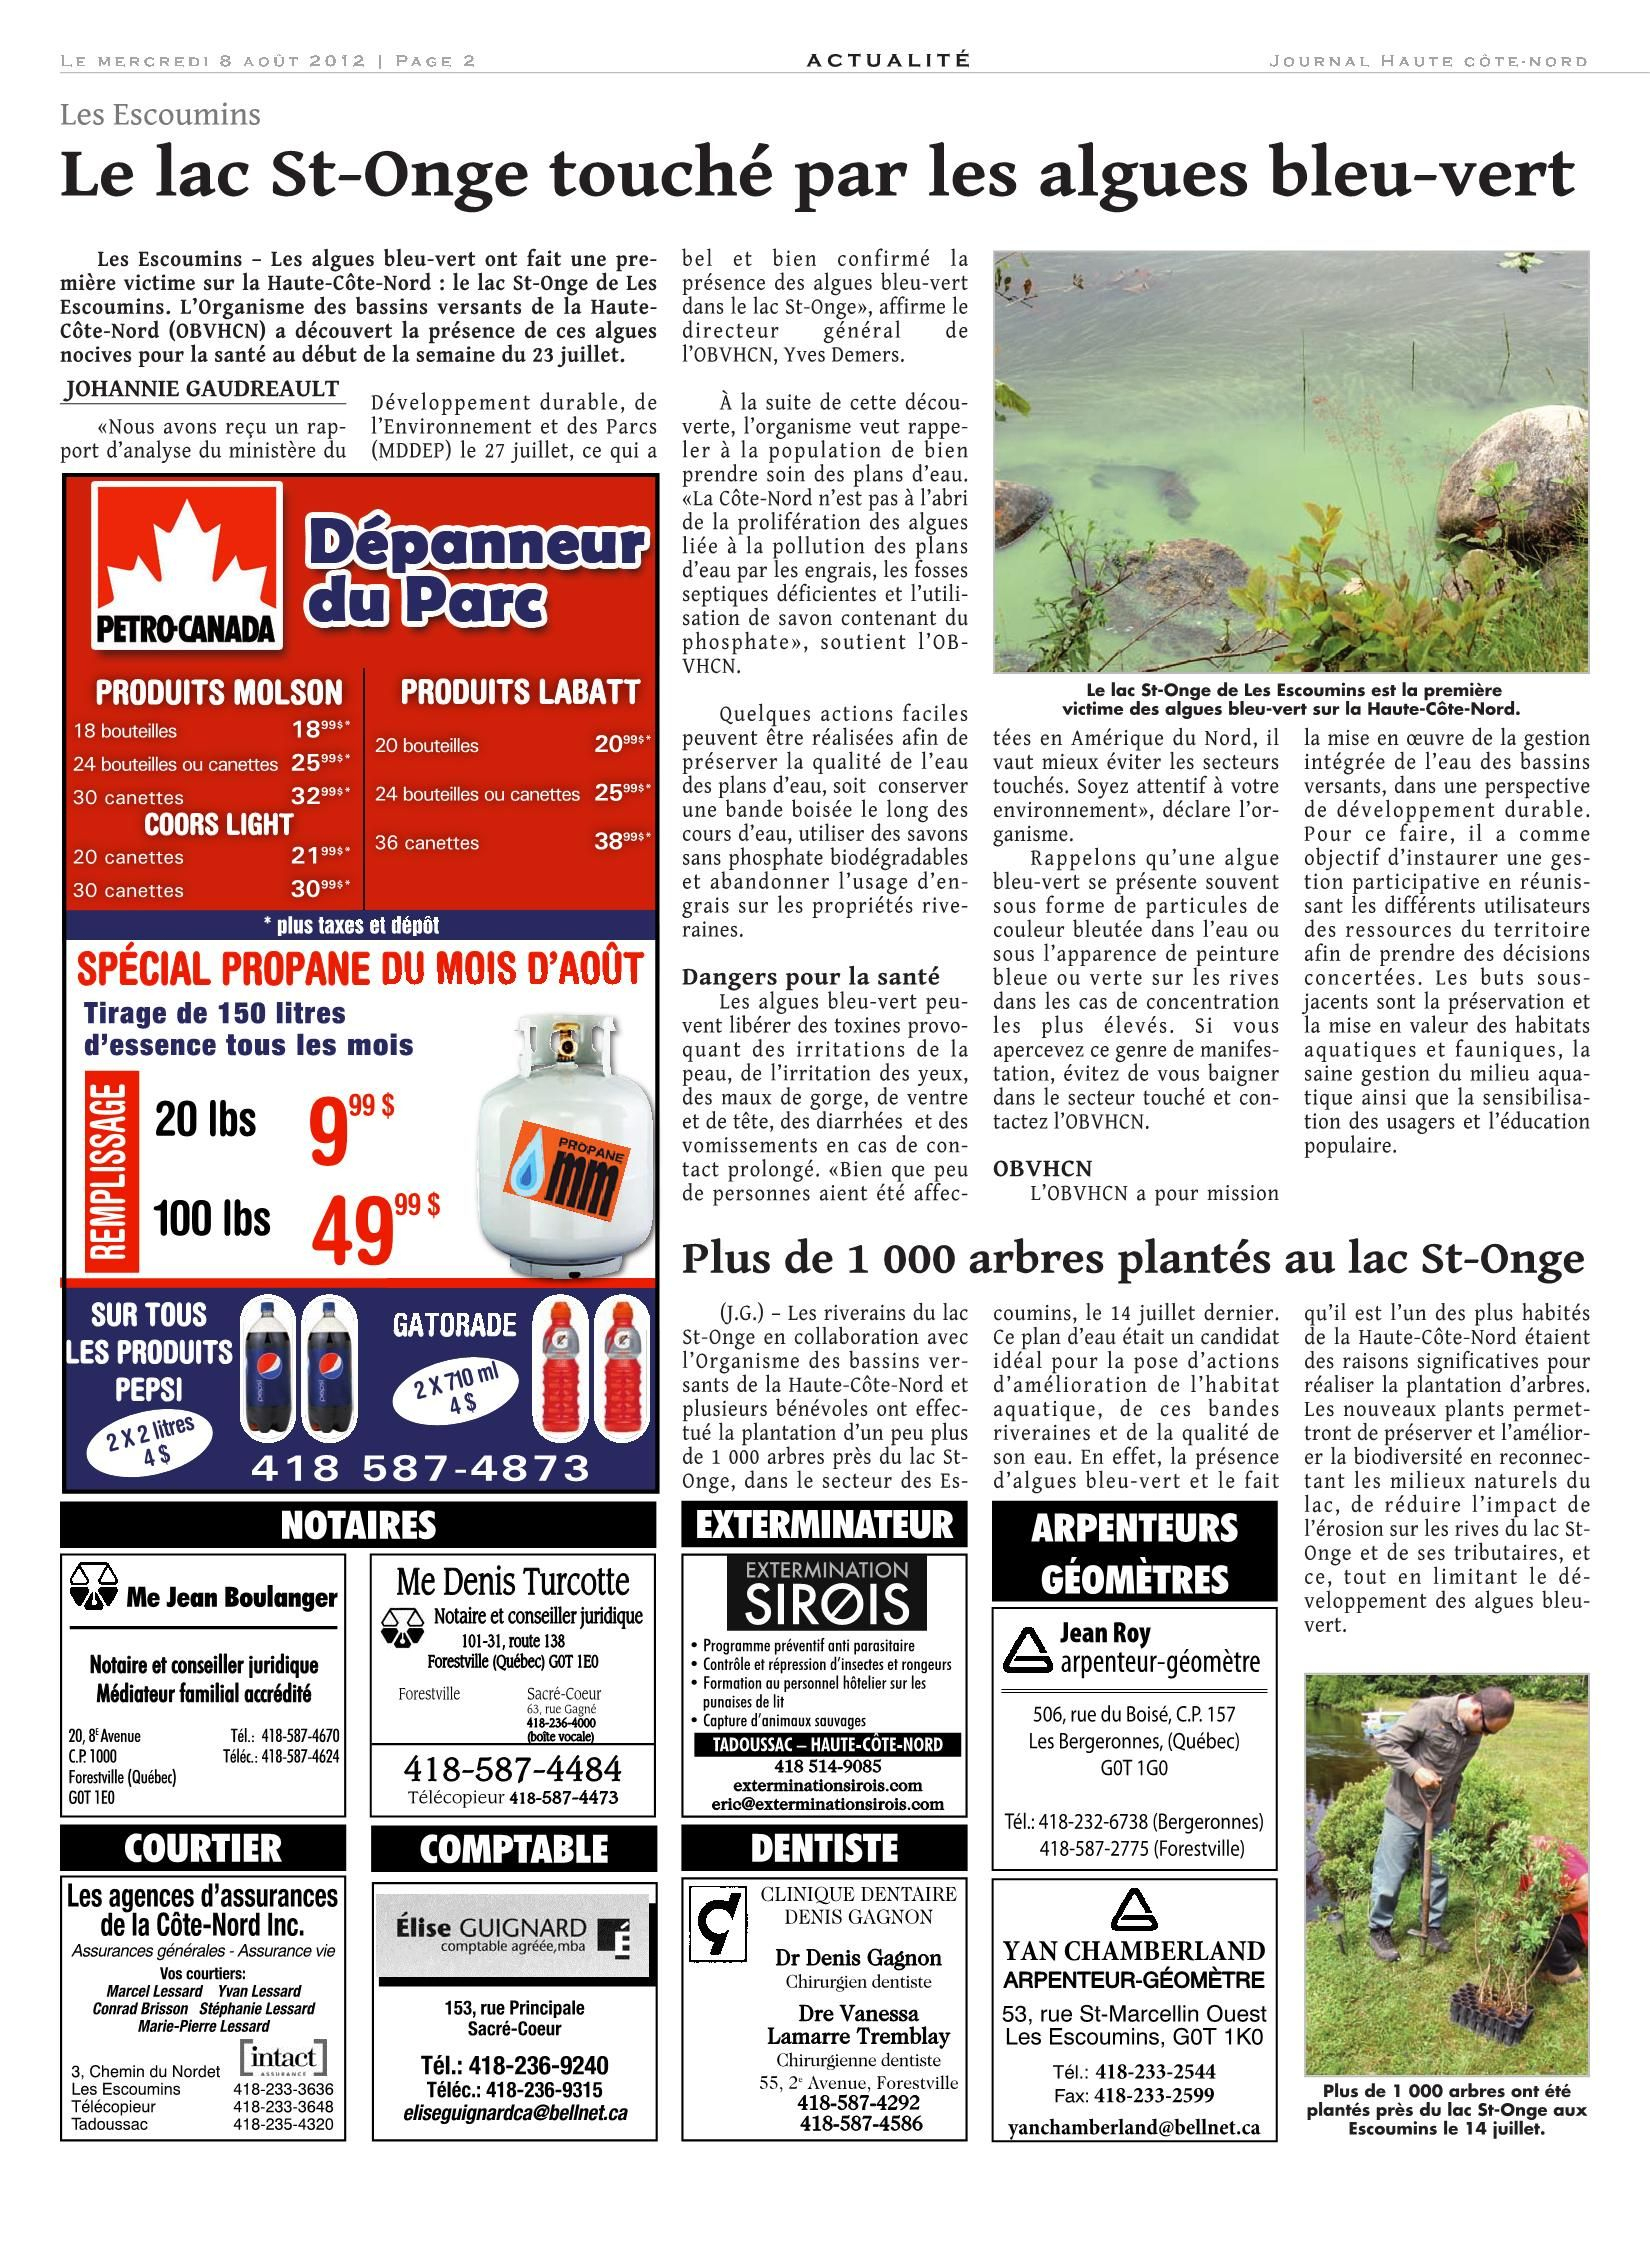 Le Haute-Côte-Nord 08 Aout 2012 Pages 1 - 40 - Text Version ... destiné Cash Piscine Bourgoin